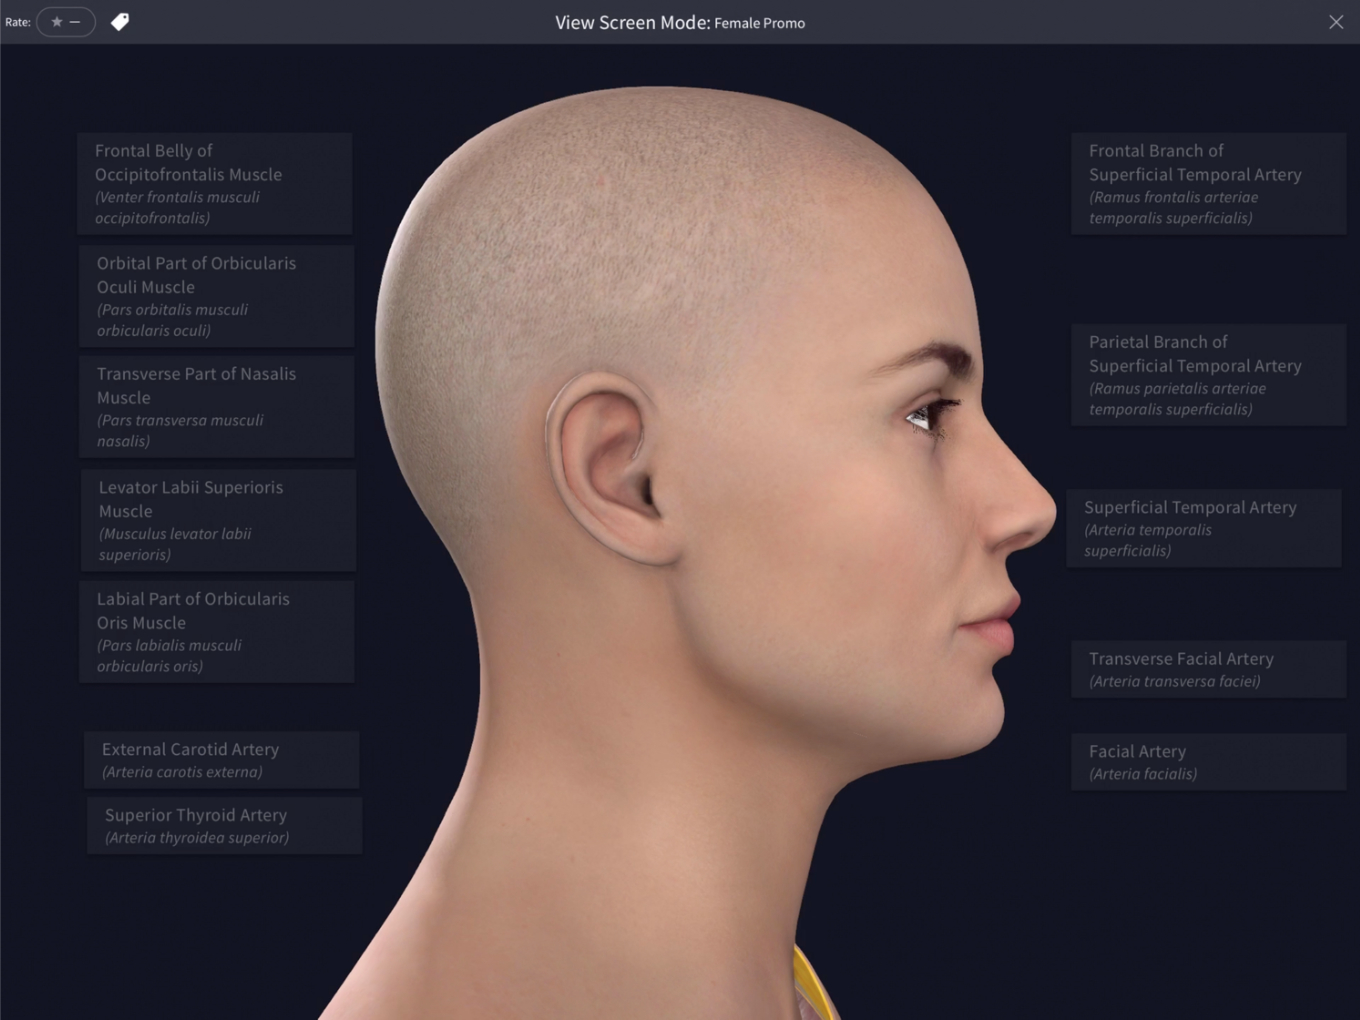 3d4medical Award Winning 3d Anatomy And Medical Apps